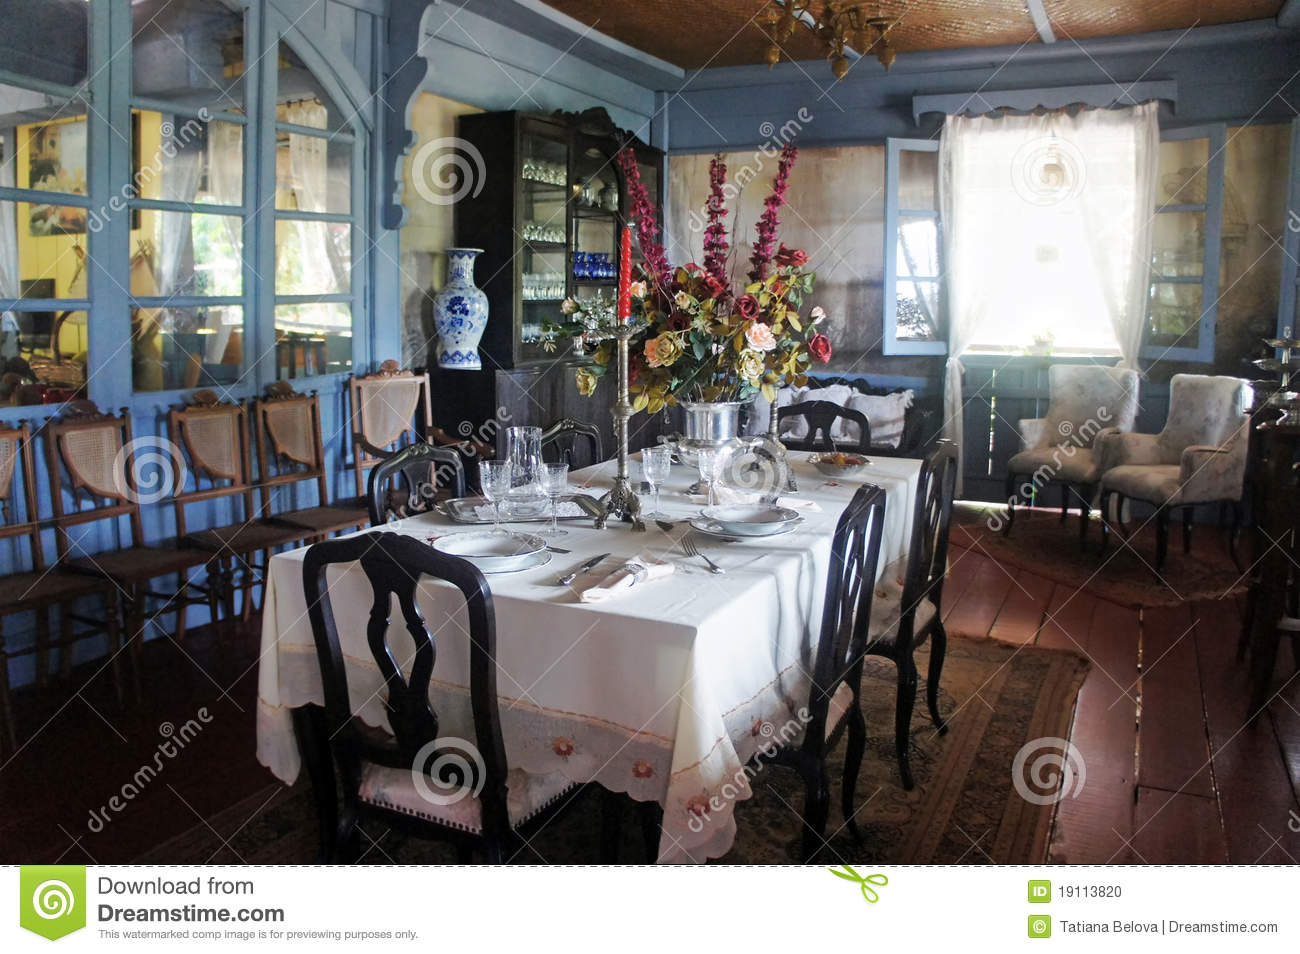 rustic kitchen table and chairs overstock island farm home interior stock photo - image: 19113820